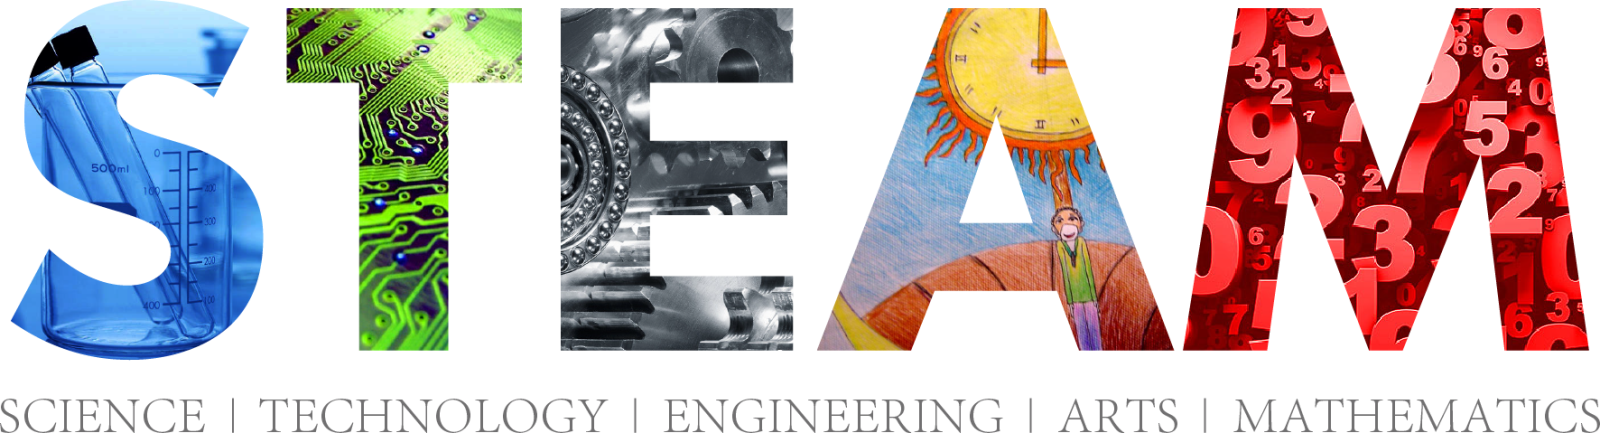 Image is the STEAM logo. Science, Technology, Engineering, Arts, Mathematics.